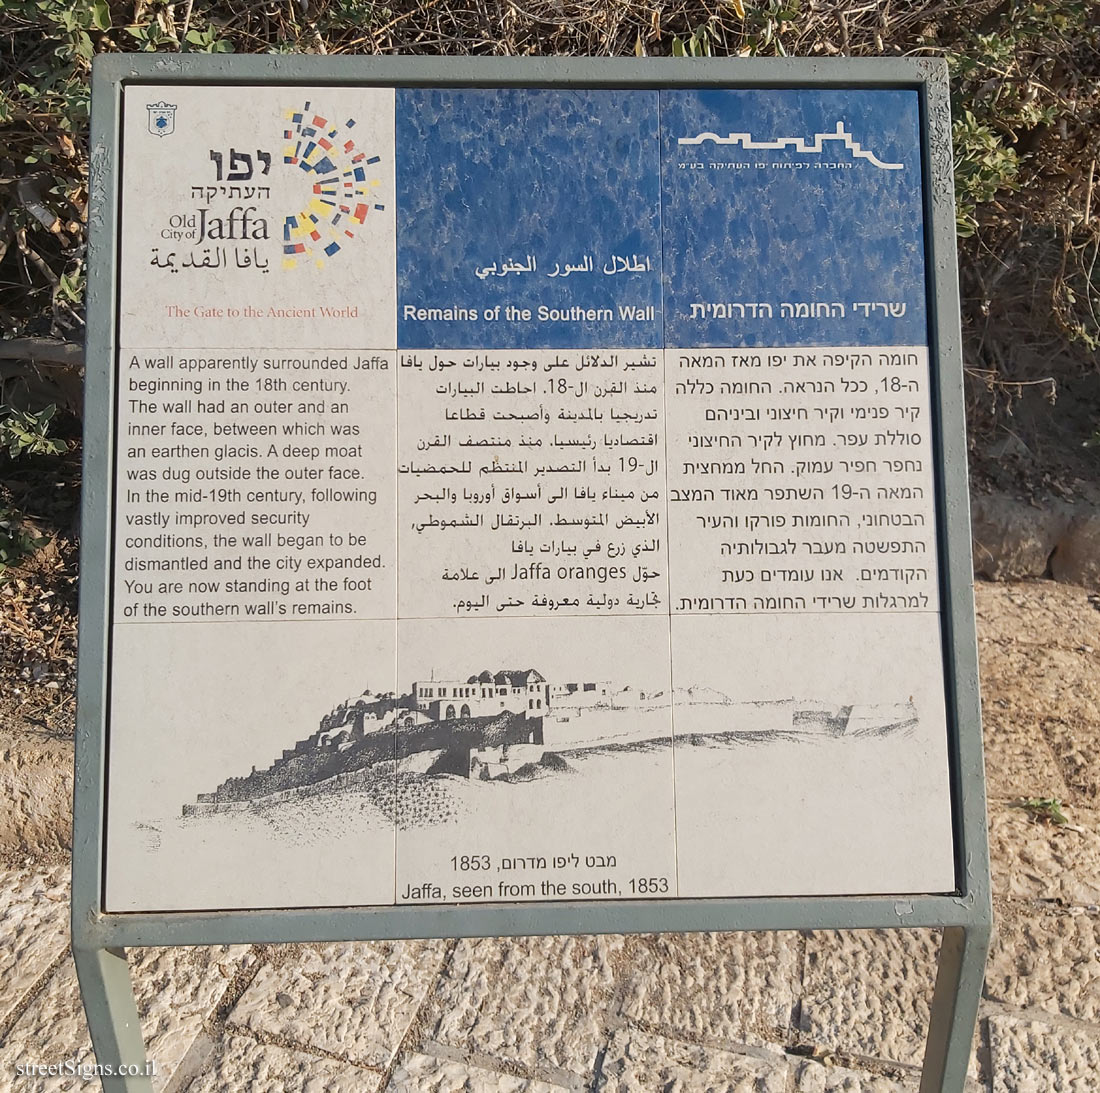 Old Jaffa - Remains of the Southern Wall